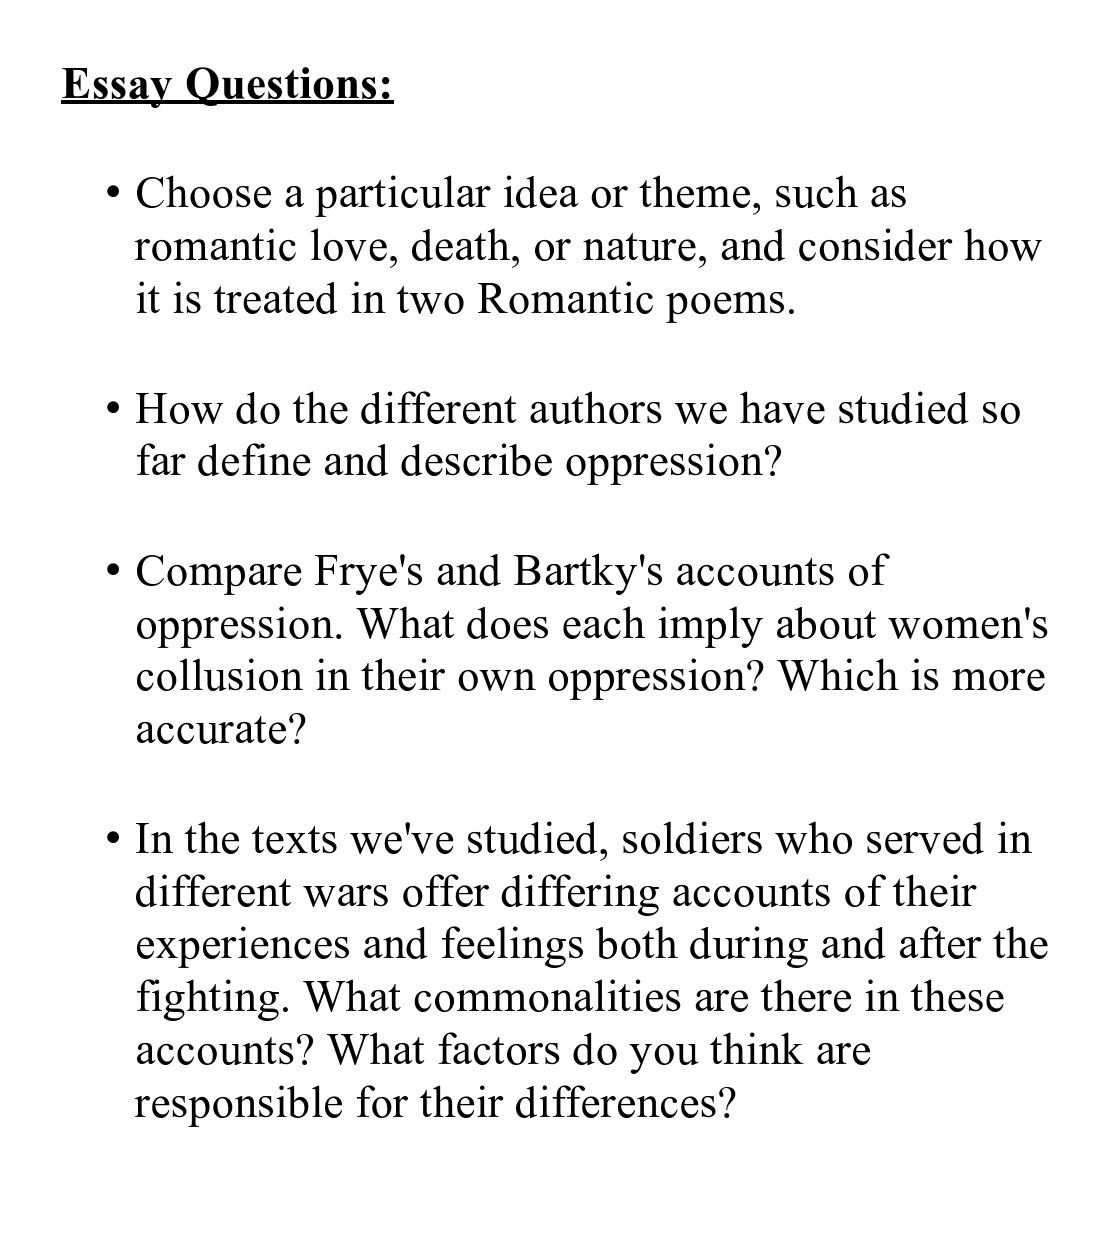 007 Essay Example Prompts Questions Best Persuasive College Creative Writing For Macbeth High School Economics Full